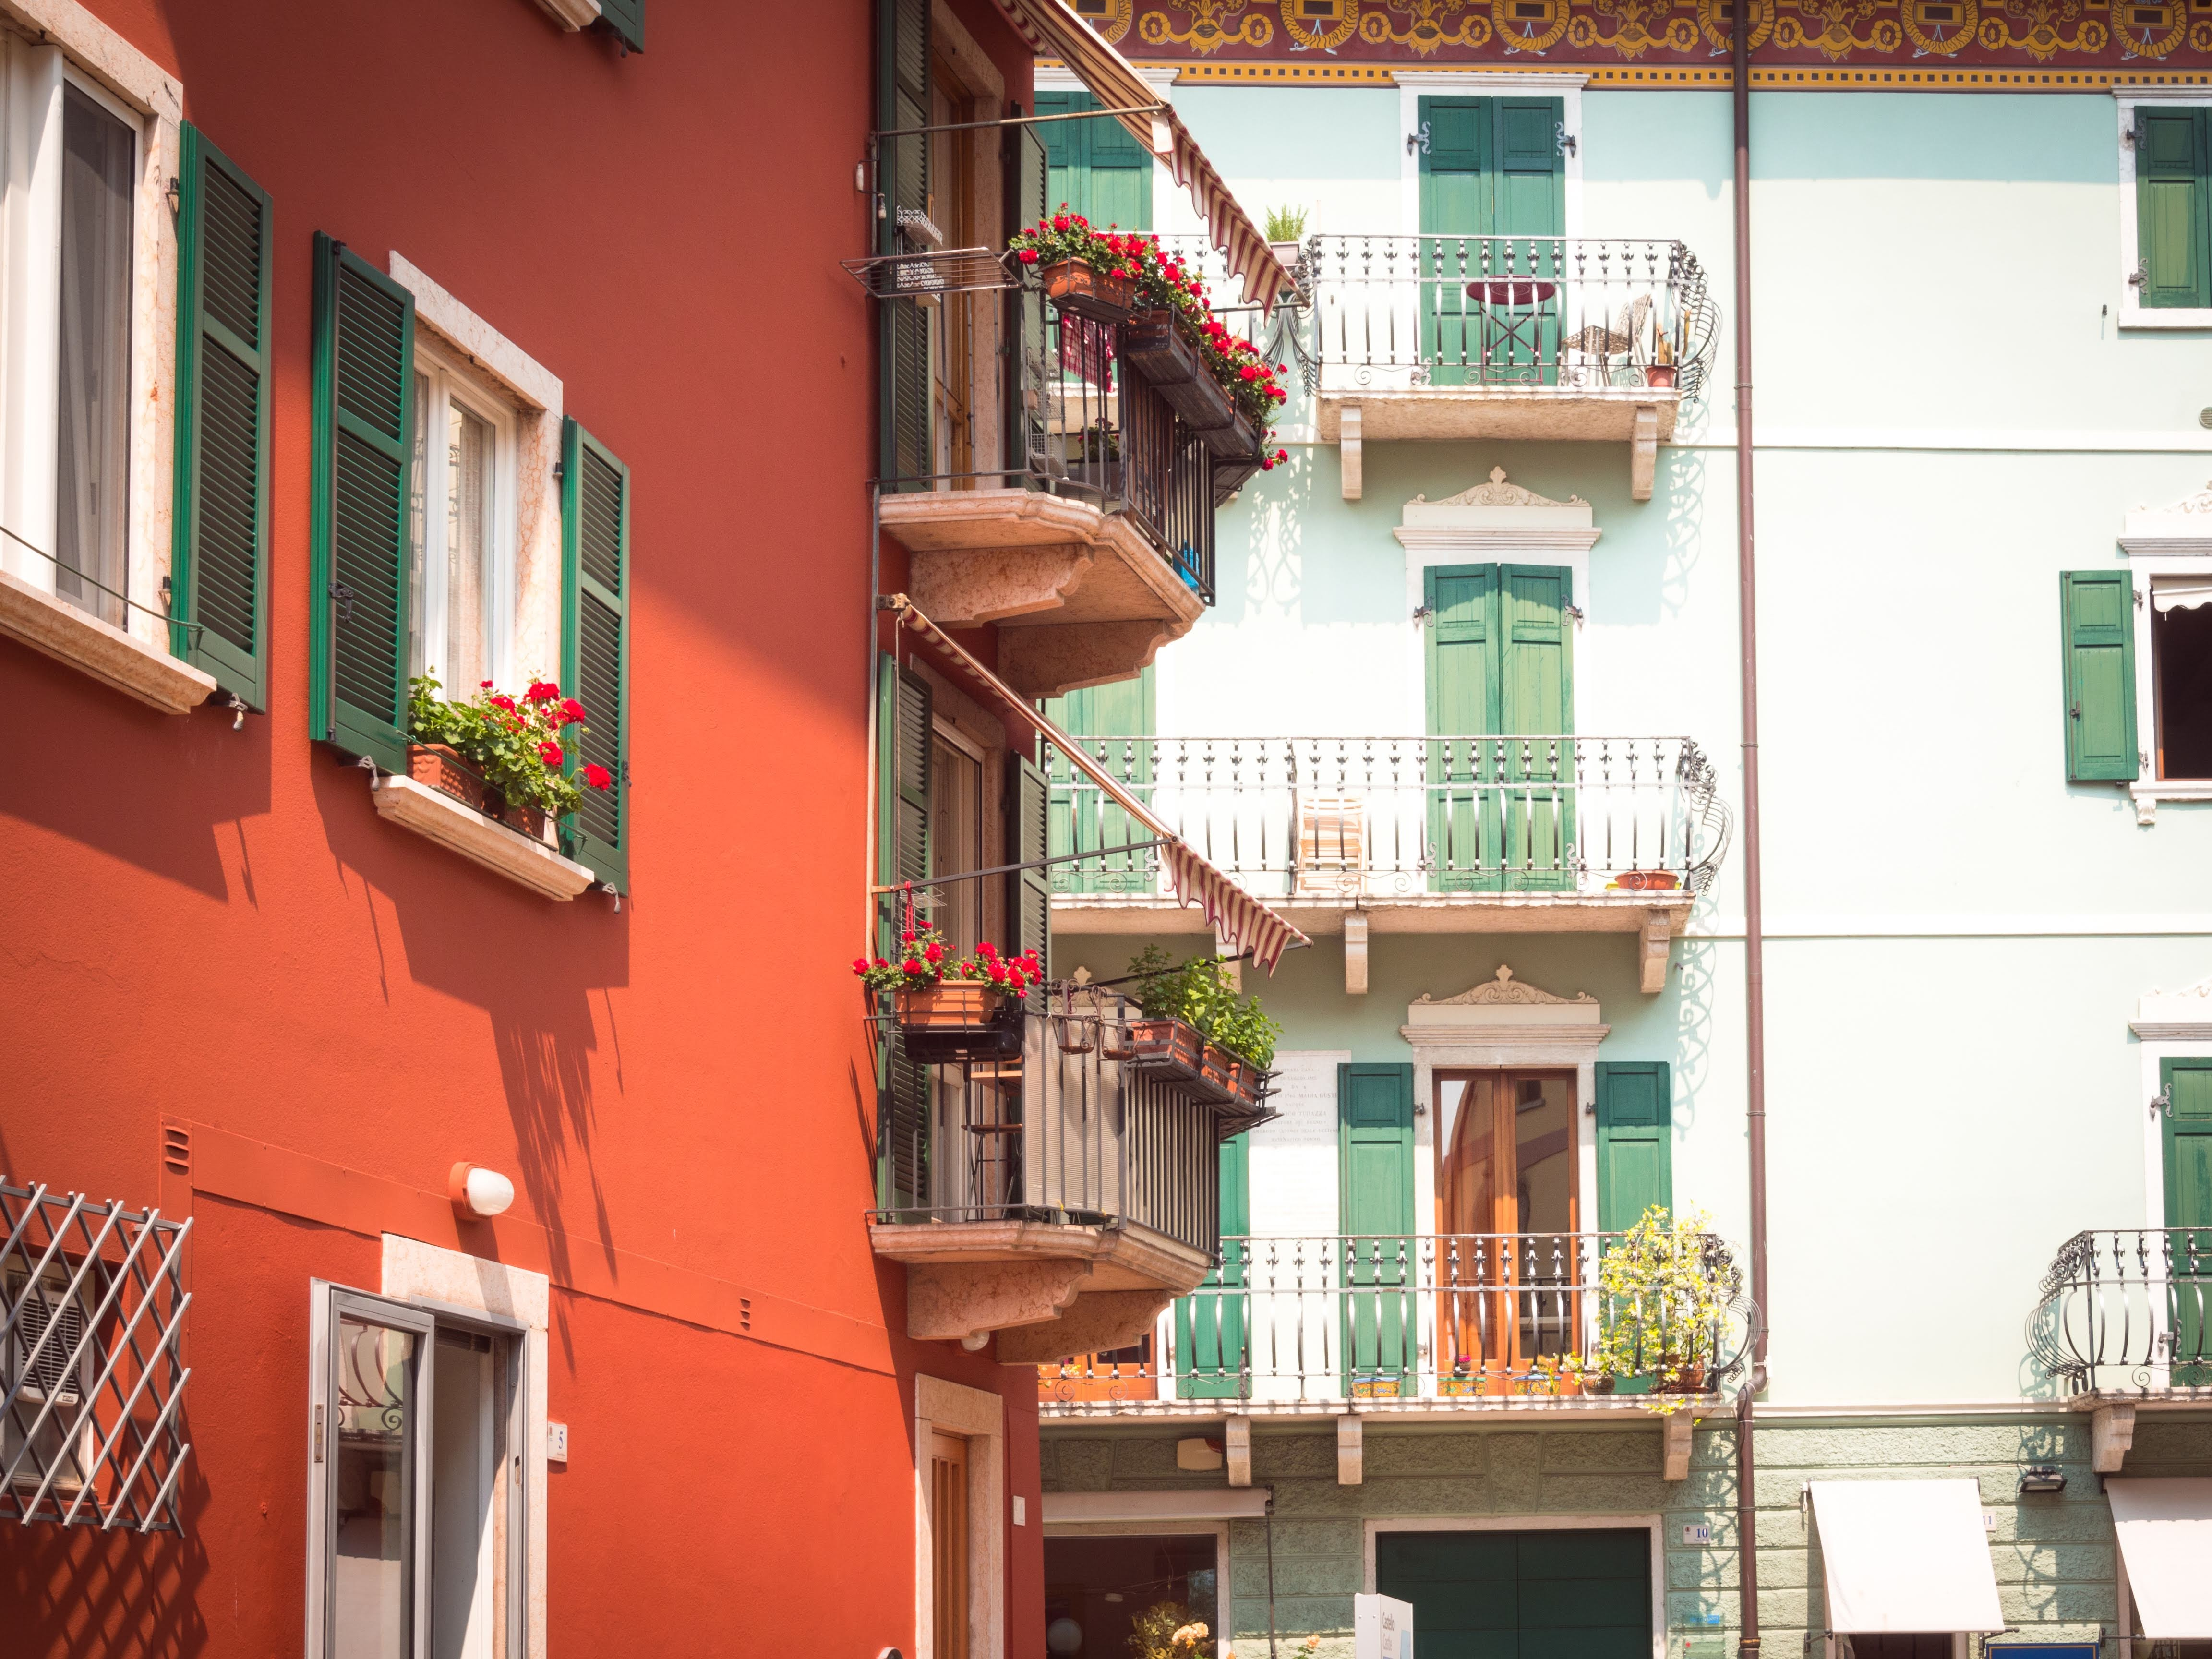 Pretty and colorful buildings in Malcesine